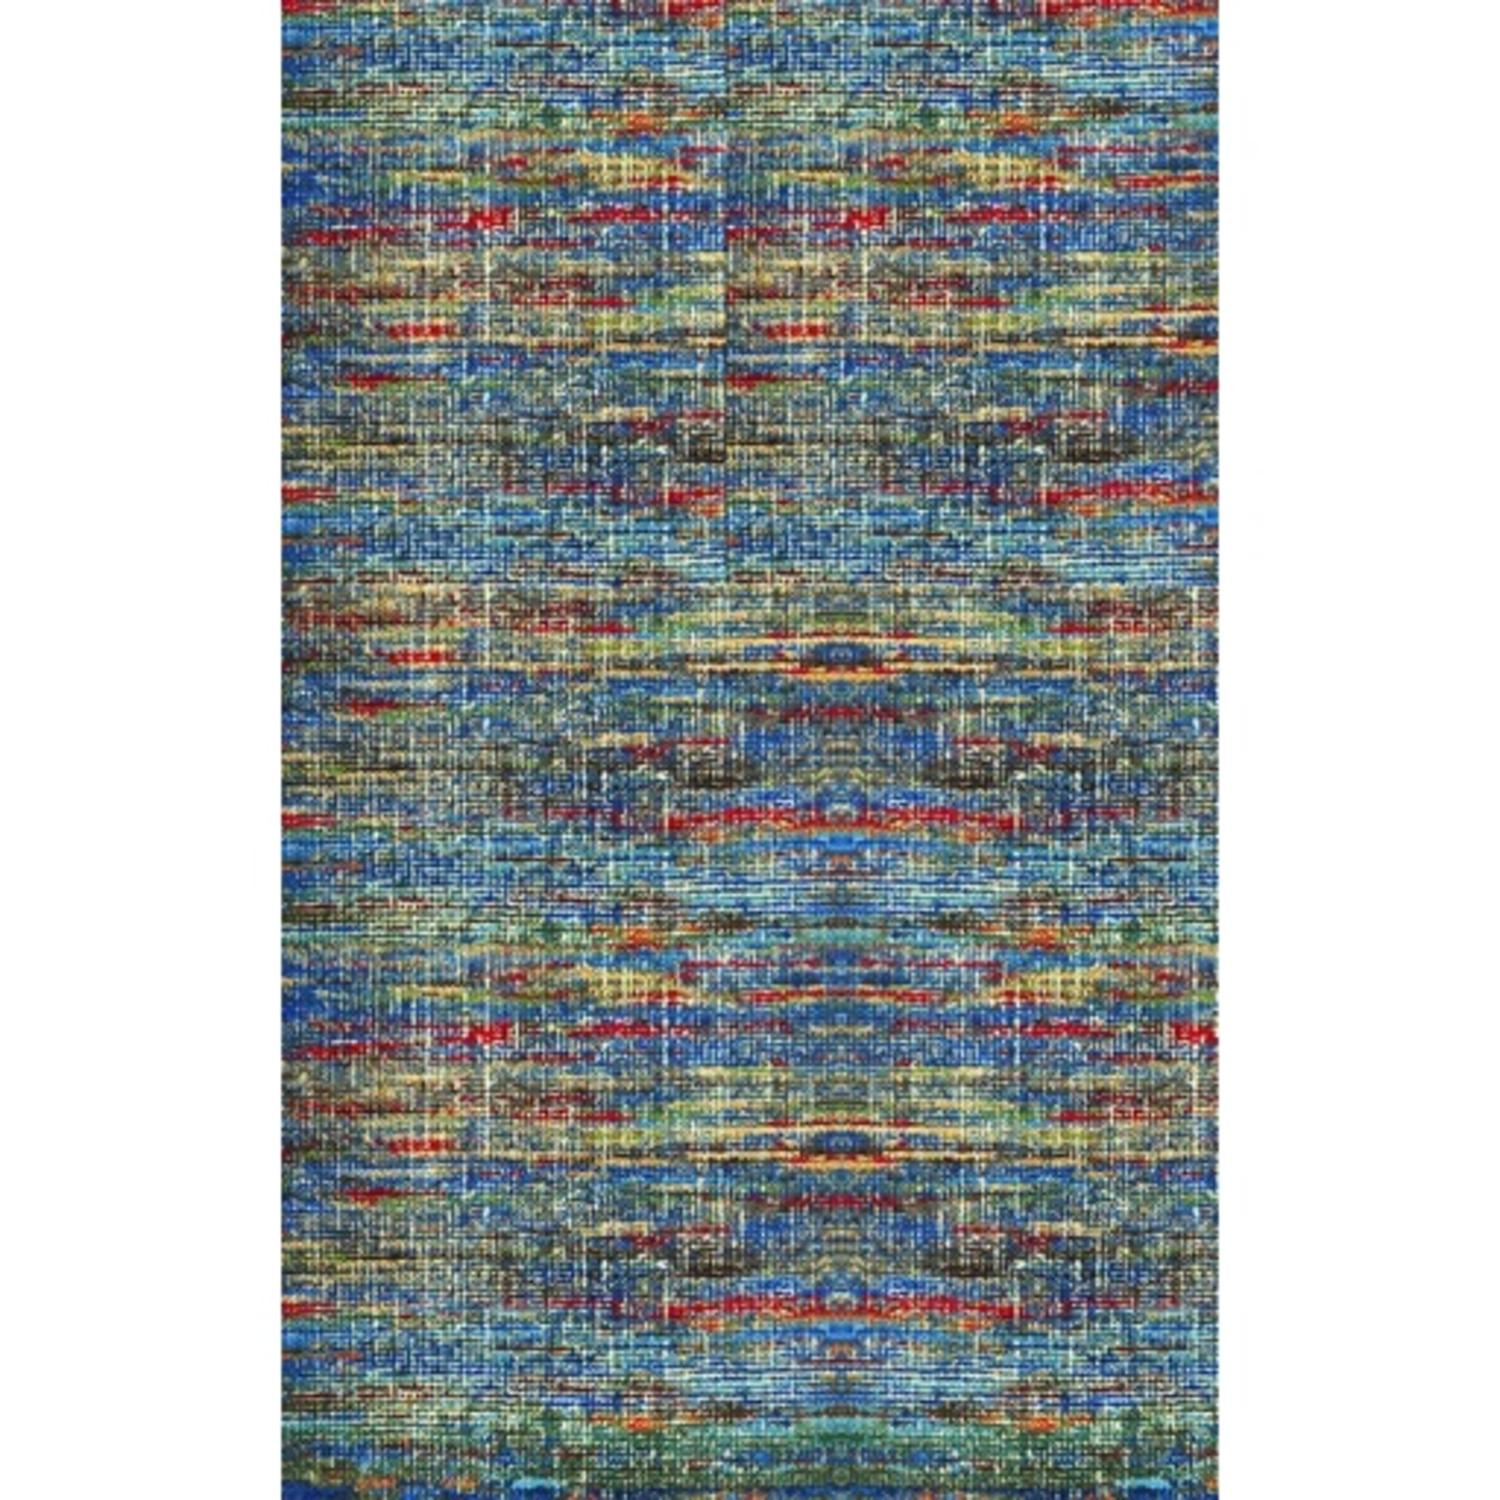 8' x 11' Bazaar Mix Honolulu Blue, Fire Red and Sea Green Hand Knotted Area Throw Rug